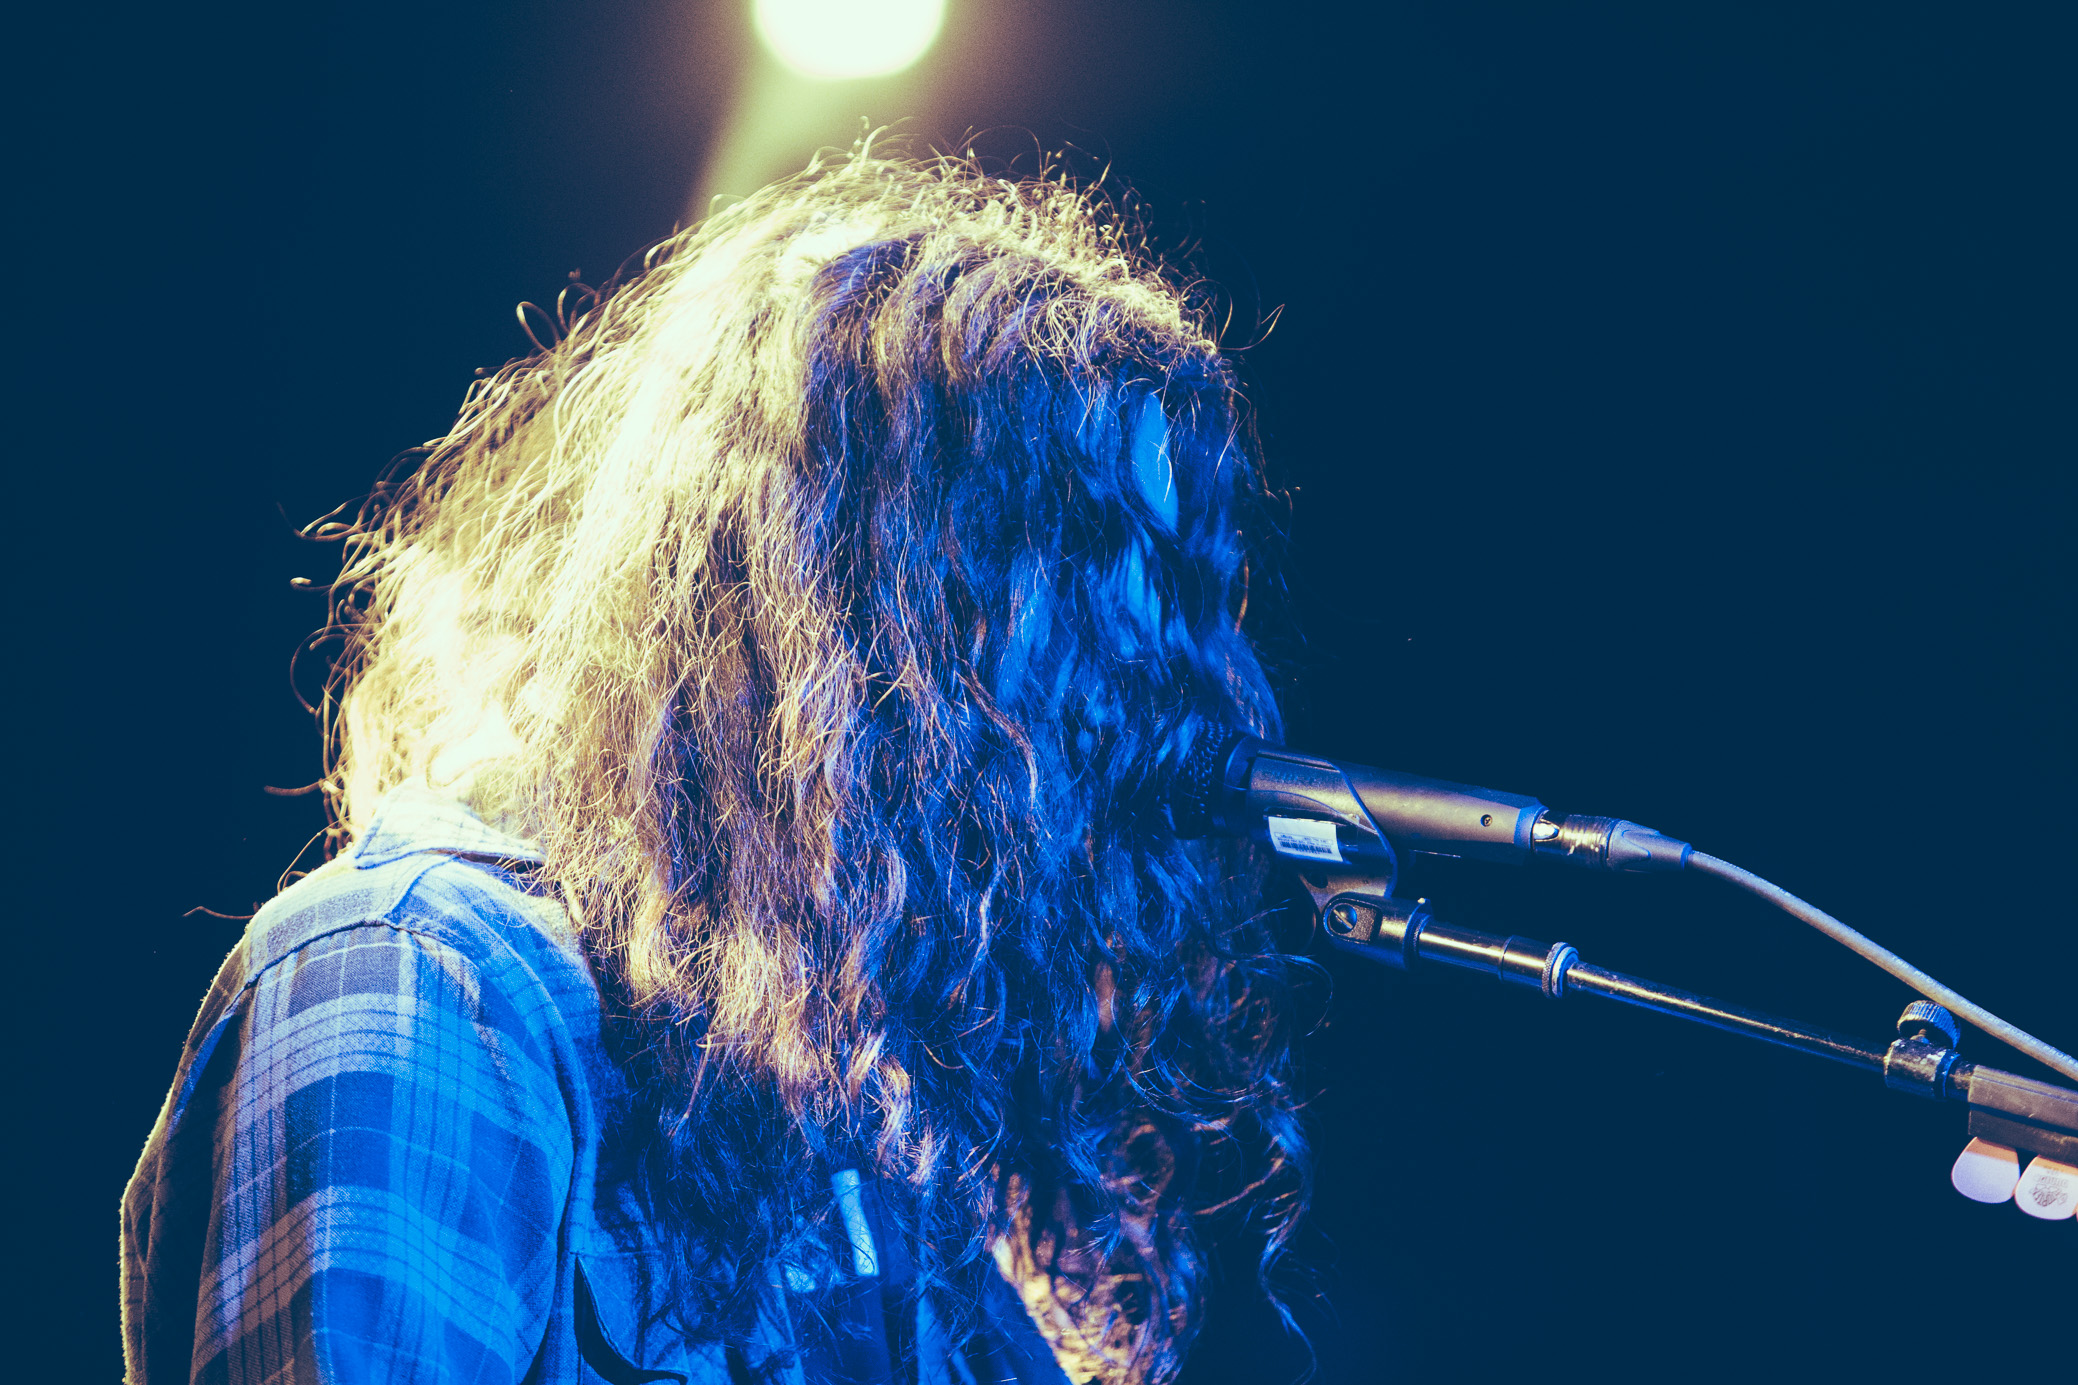 Kurt Vile and The Violators perform in concert at Saturn Birmingham in Birmingham, Alabama on March 15th, 2019. (Photo by David A. Smith / DSmithScenes)